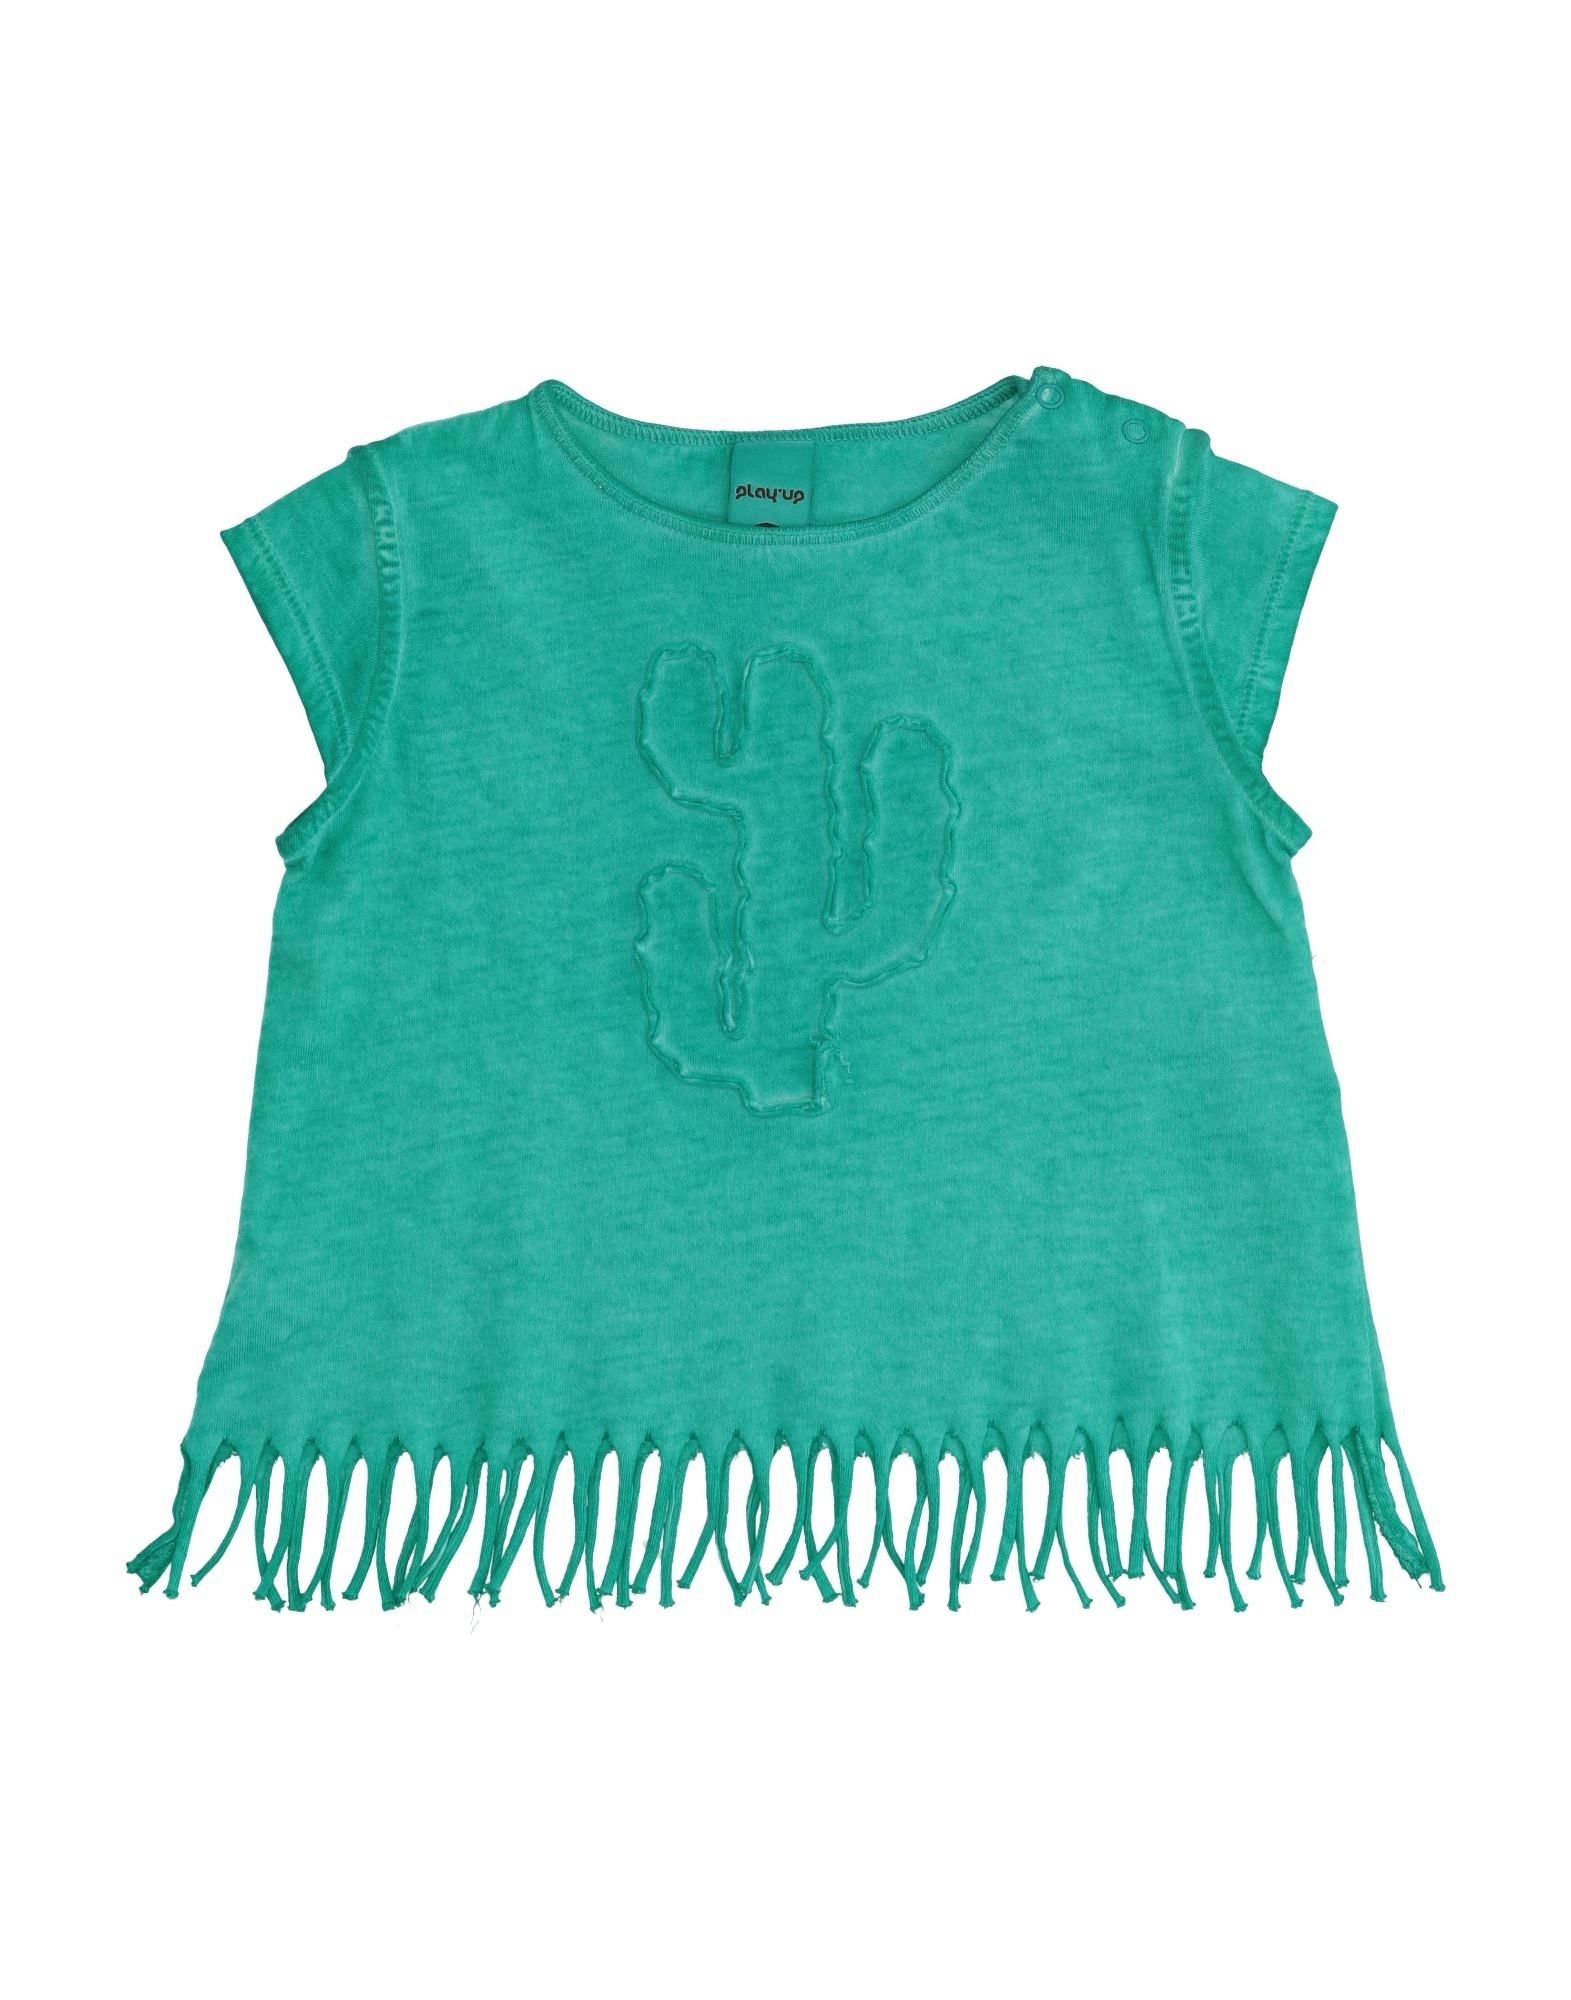 Play Up Kids' T-shirts In Green